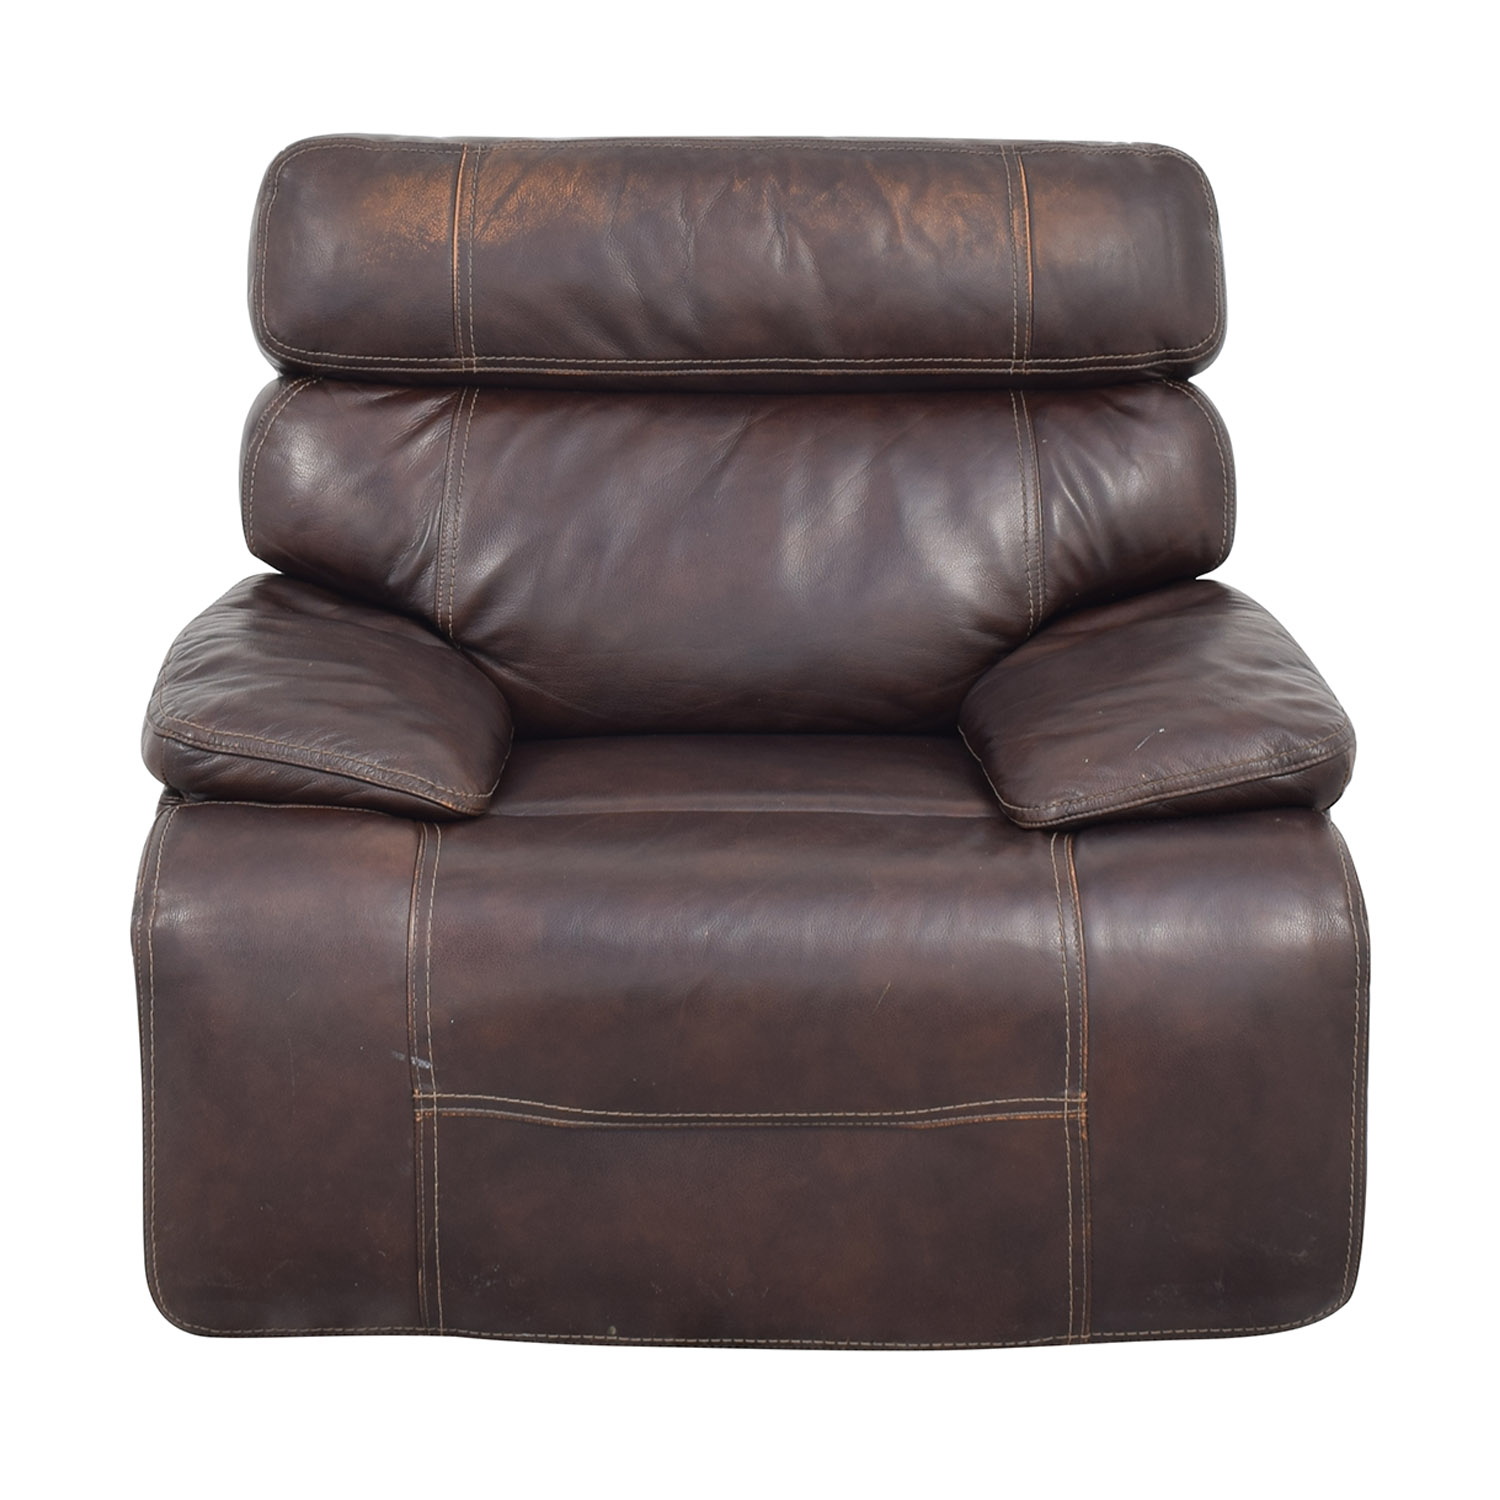 Simon Li Simon Li Comfort Zone Rocker Recliner nj